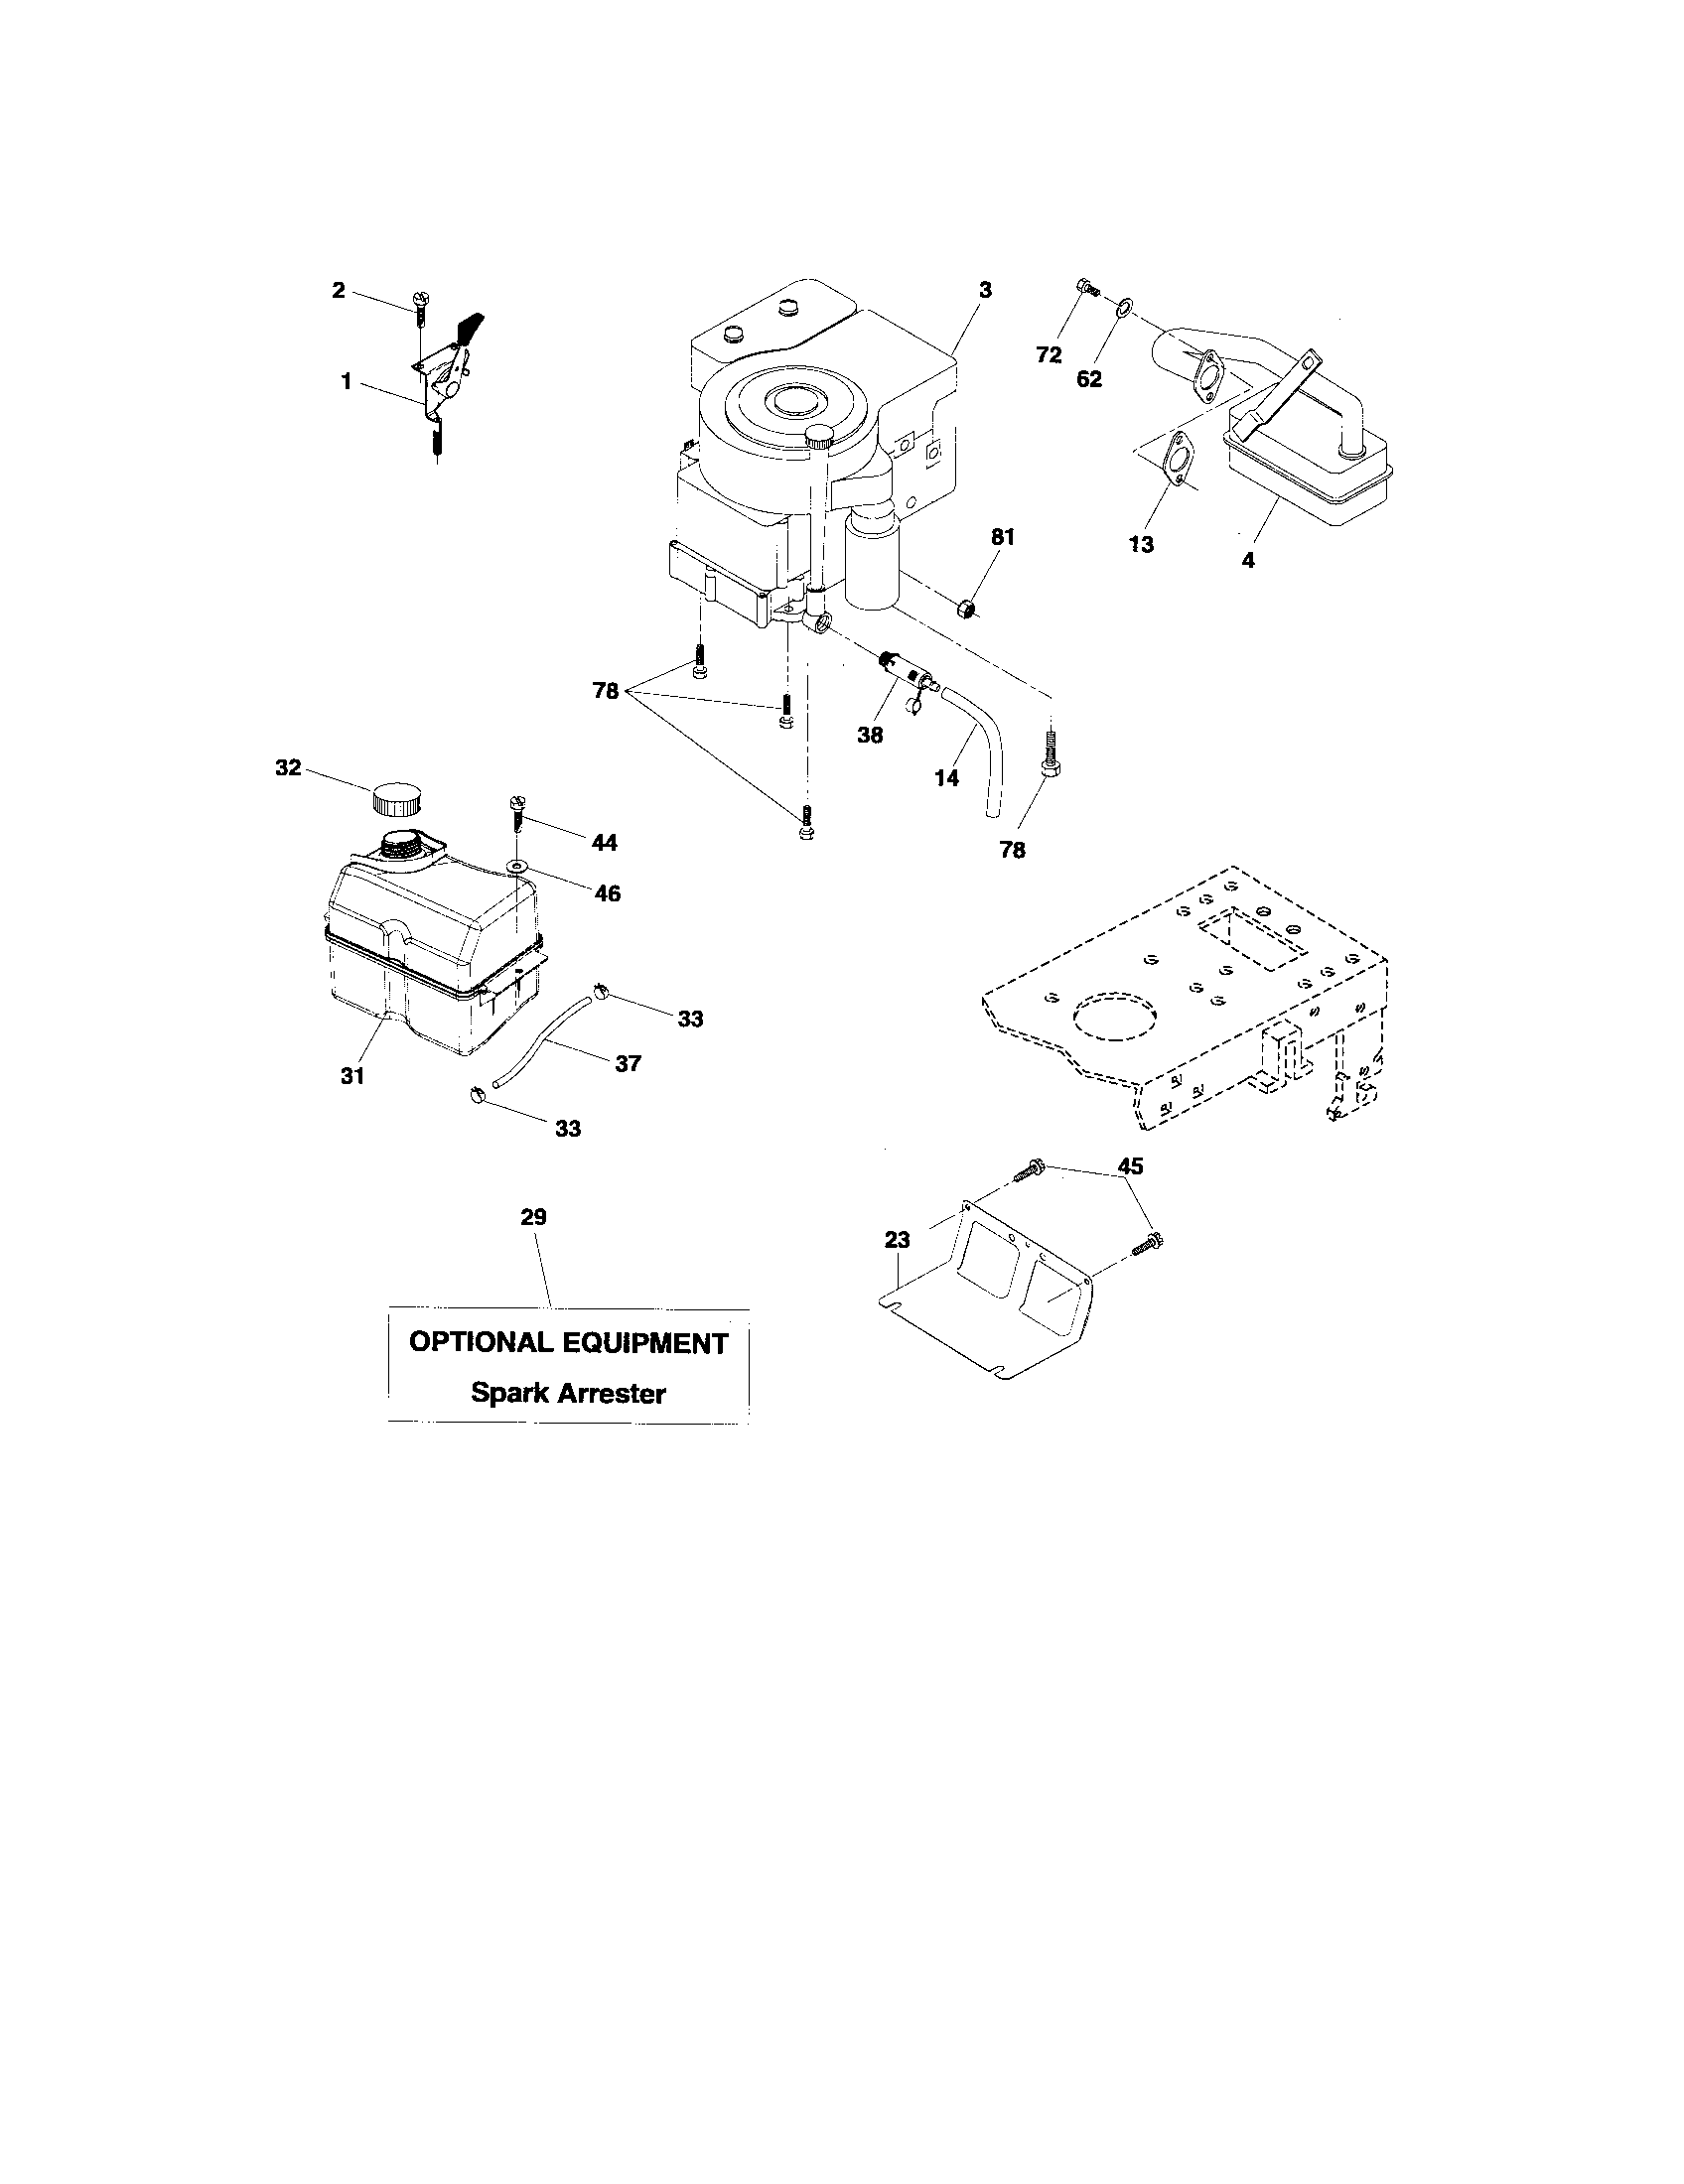 ENGINE Diagram & Parts List for Model 917276813 Craftsman